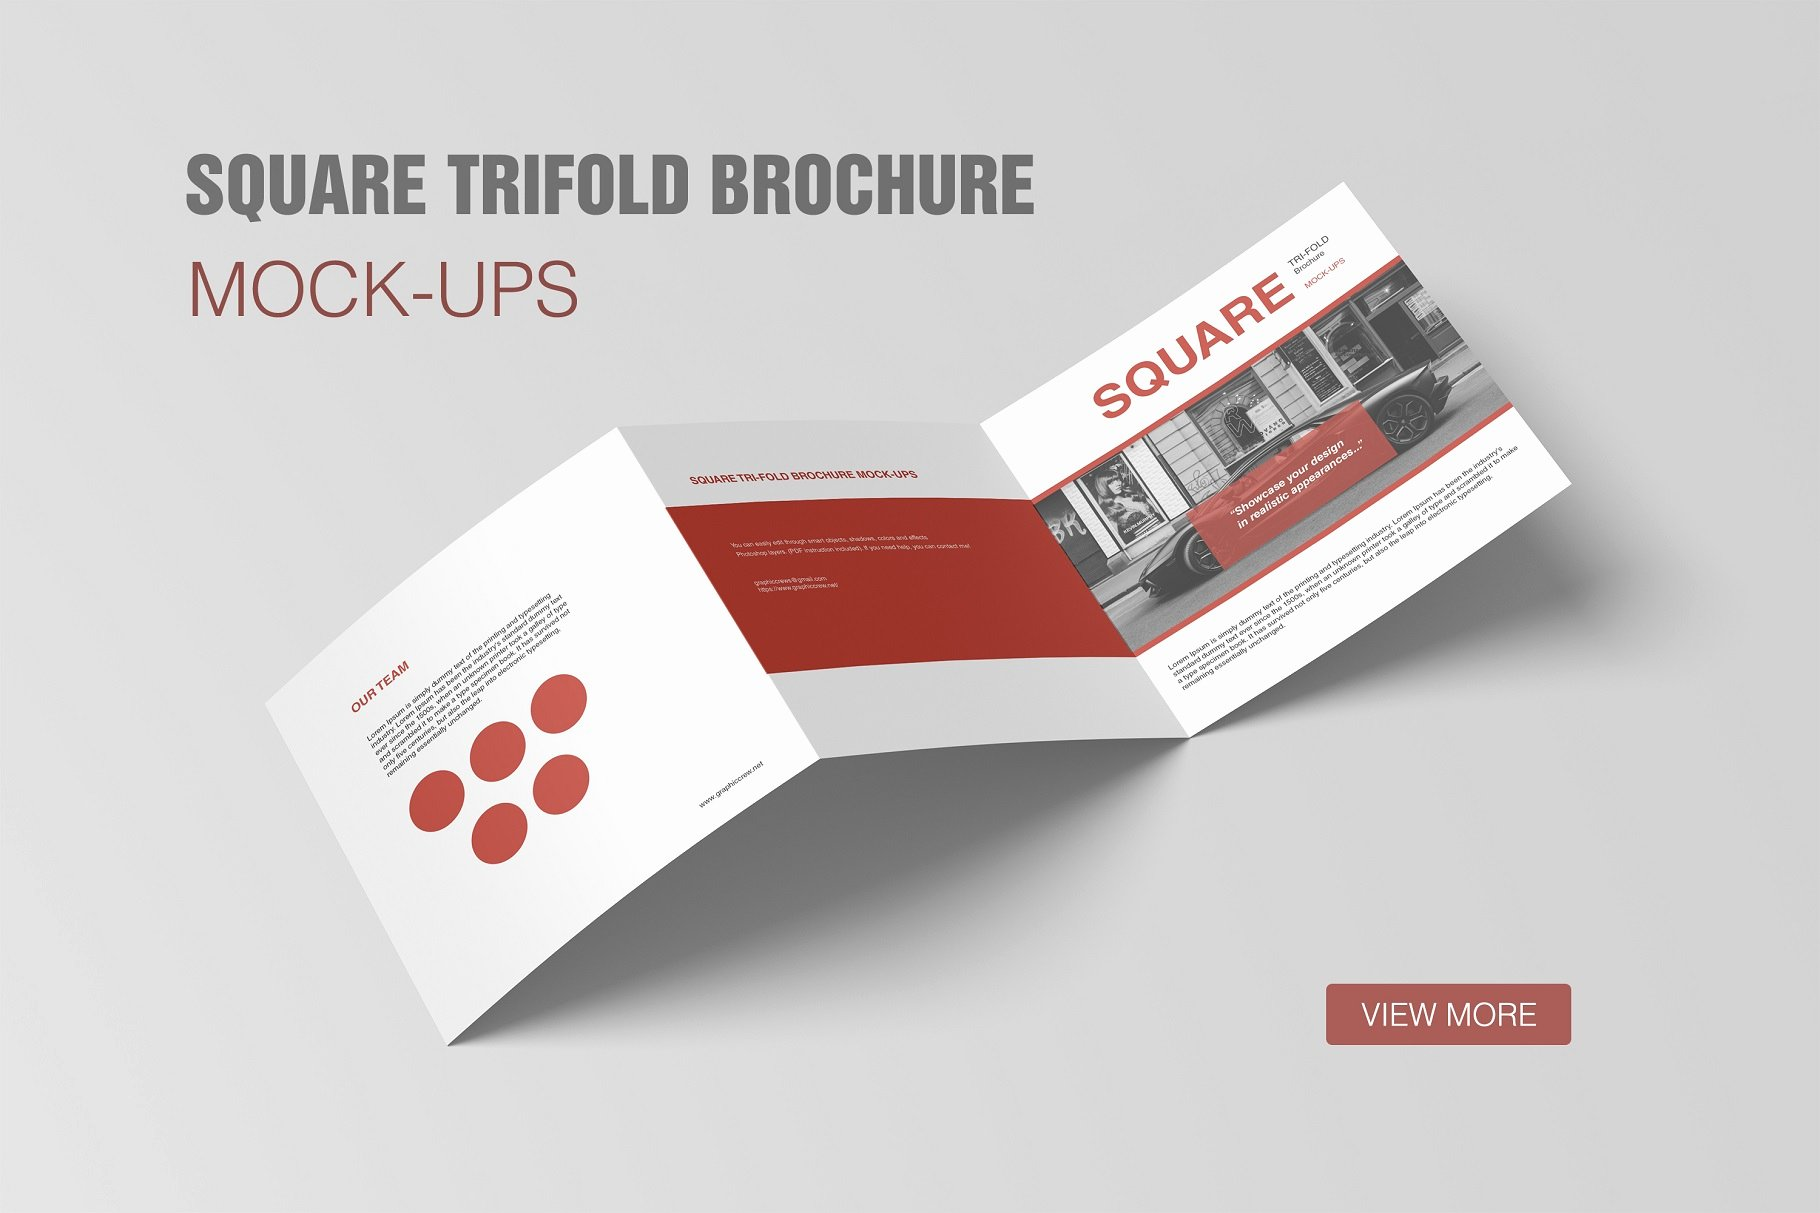 Square Trifold Brochure Template Best Of Square Trifold Brochure Mockup